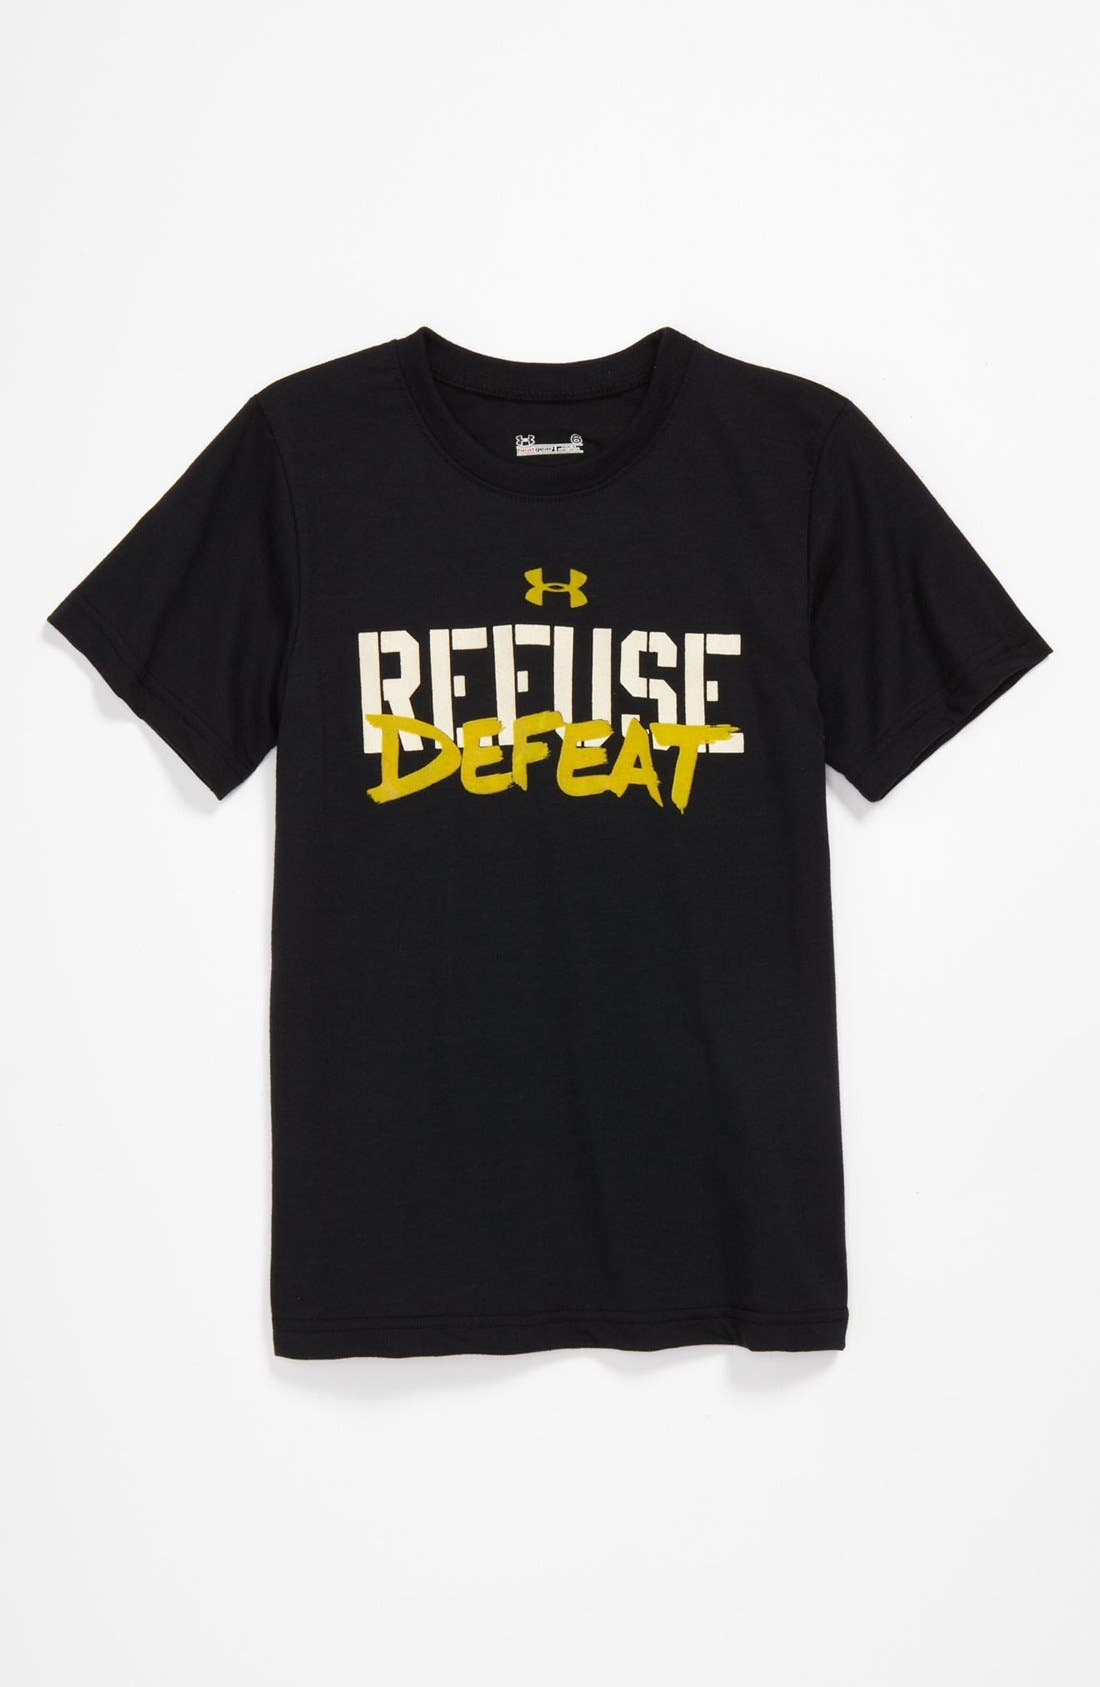 Alternate Image 1 Selected - Under Armour 'Refuse Defeat' T-Shirt (Little Boys)